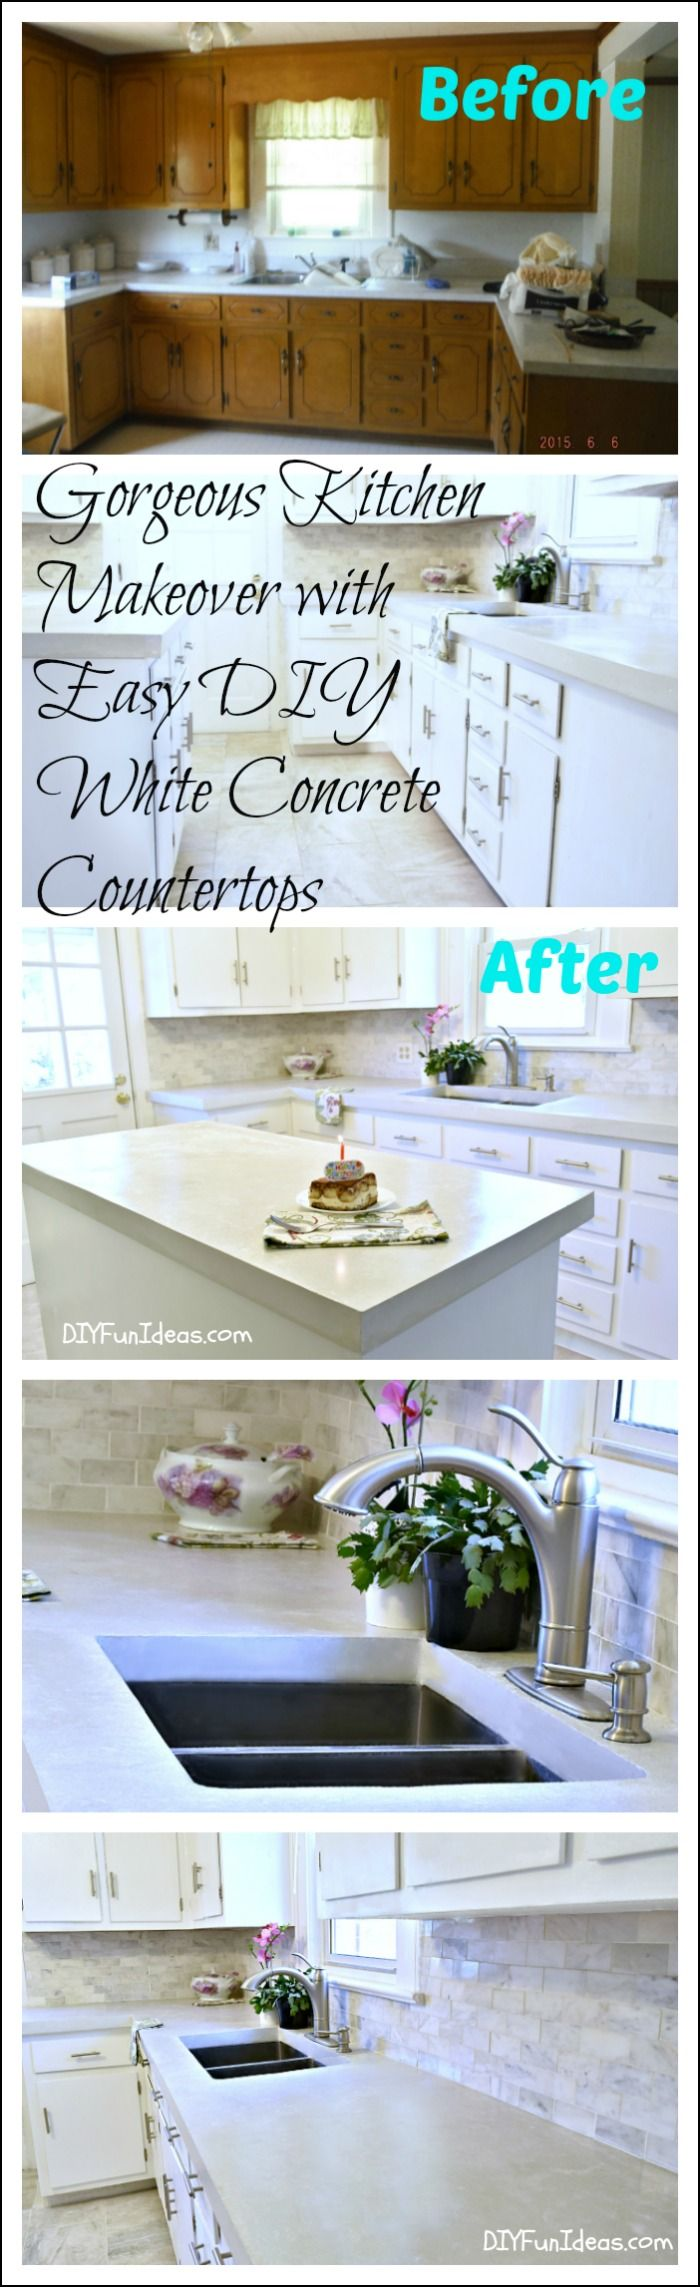 GORGEOUS BUDGET KITCHEN MAKEOVER WITH WHITE CONCRETE COUNTERTOPS